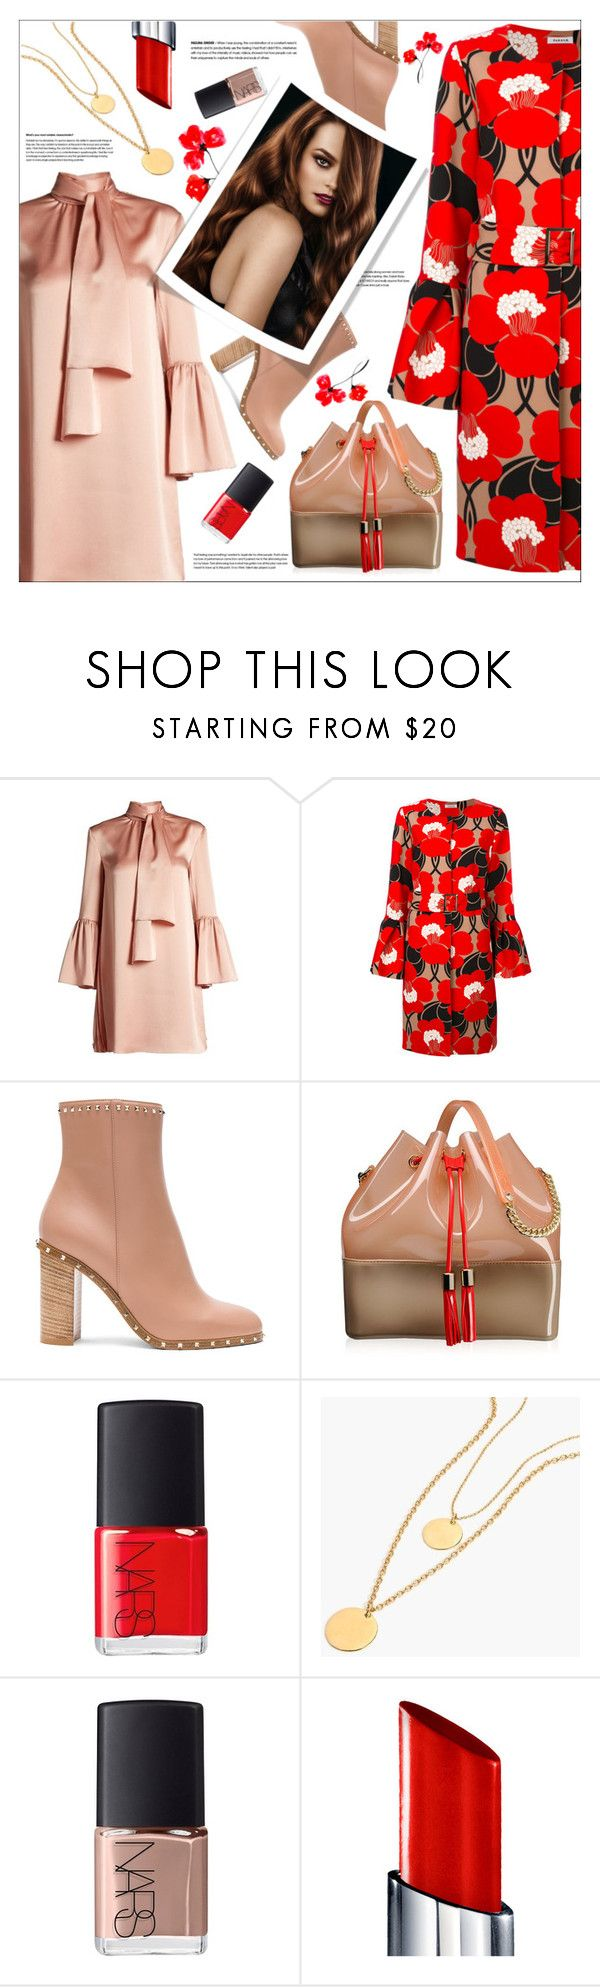 """Untitled #156"" by shewalksinsilence ❤ liked on Polyvore featuring Fendi, P.A.R.O.S.H., Valentino, Kartell, NARS Cosmetics, J.Crew and By Terry"